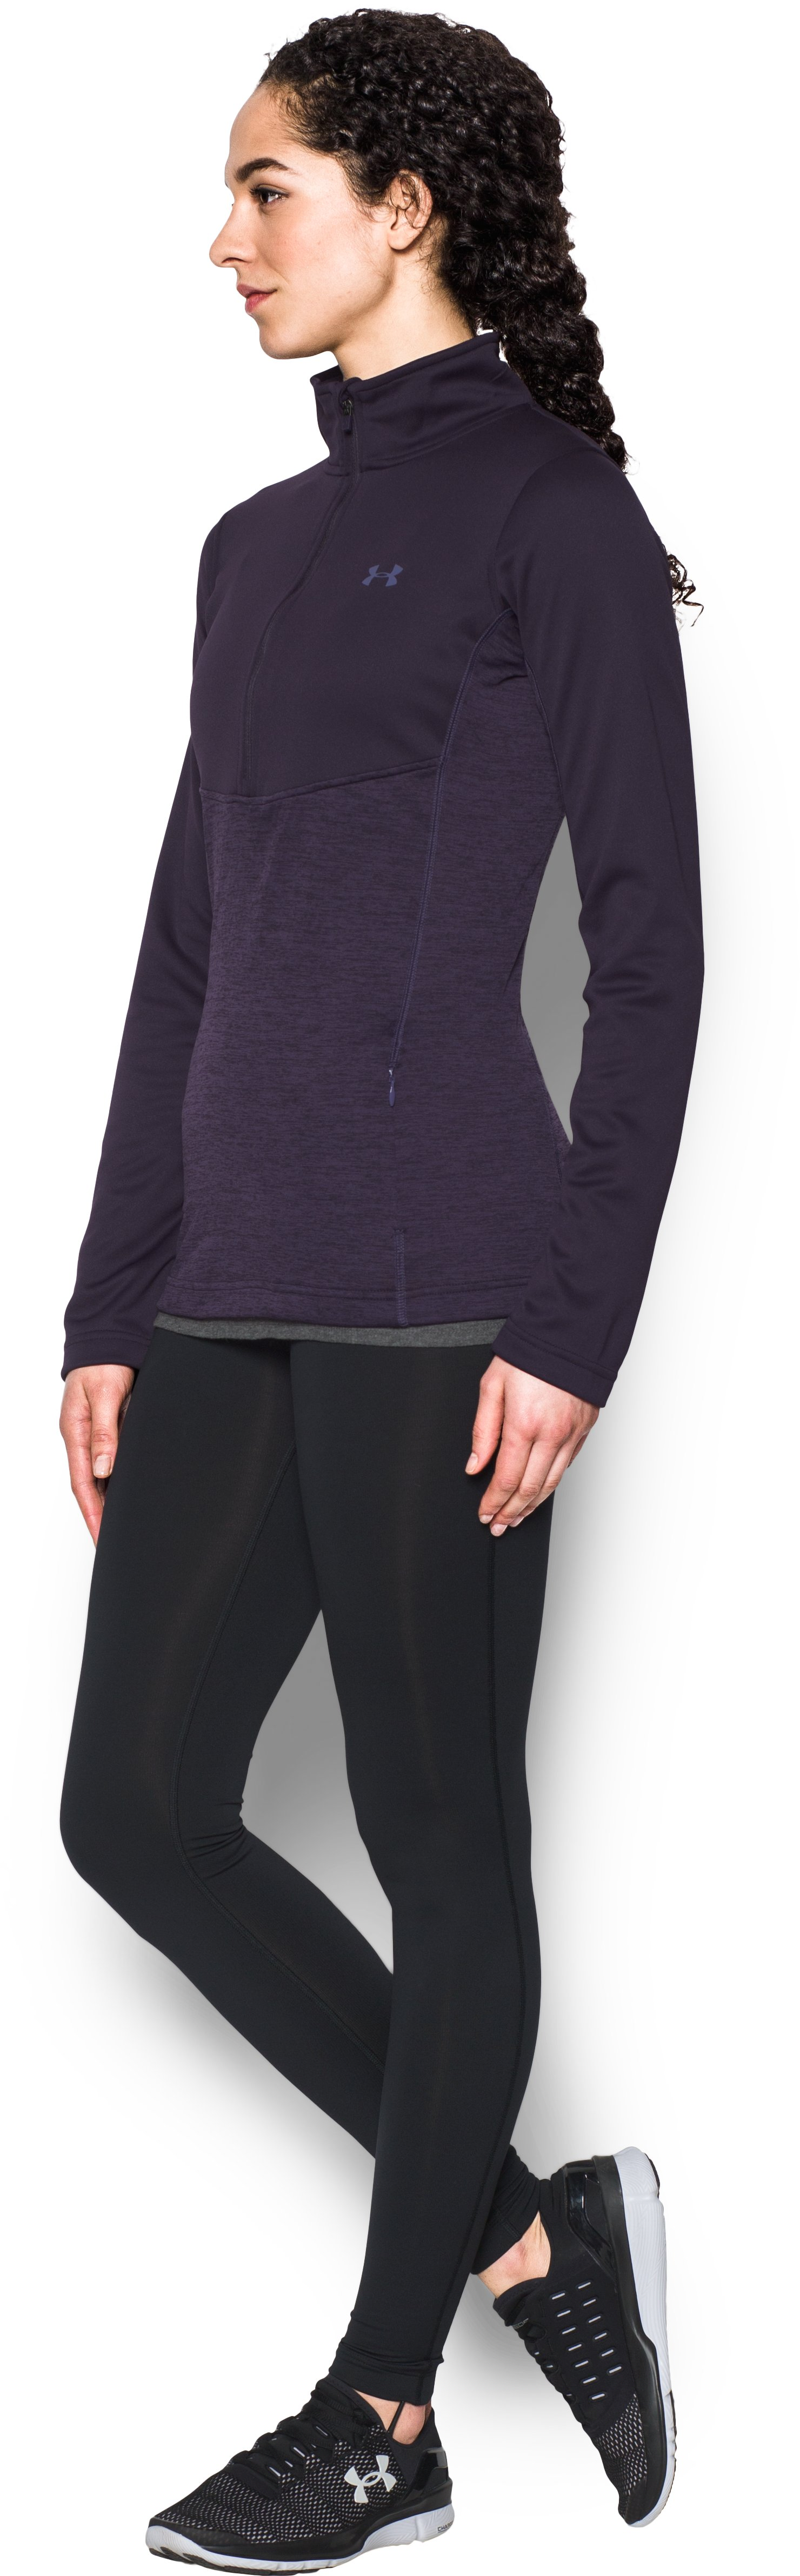 Women's UA Gamutlite 1/2 Zip, IMPERIAL PURPLE, undefined